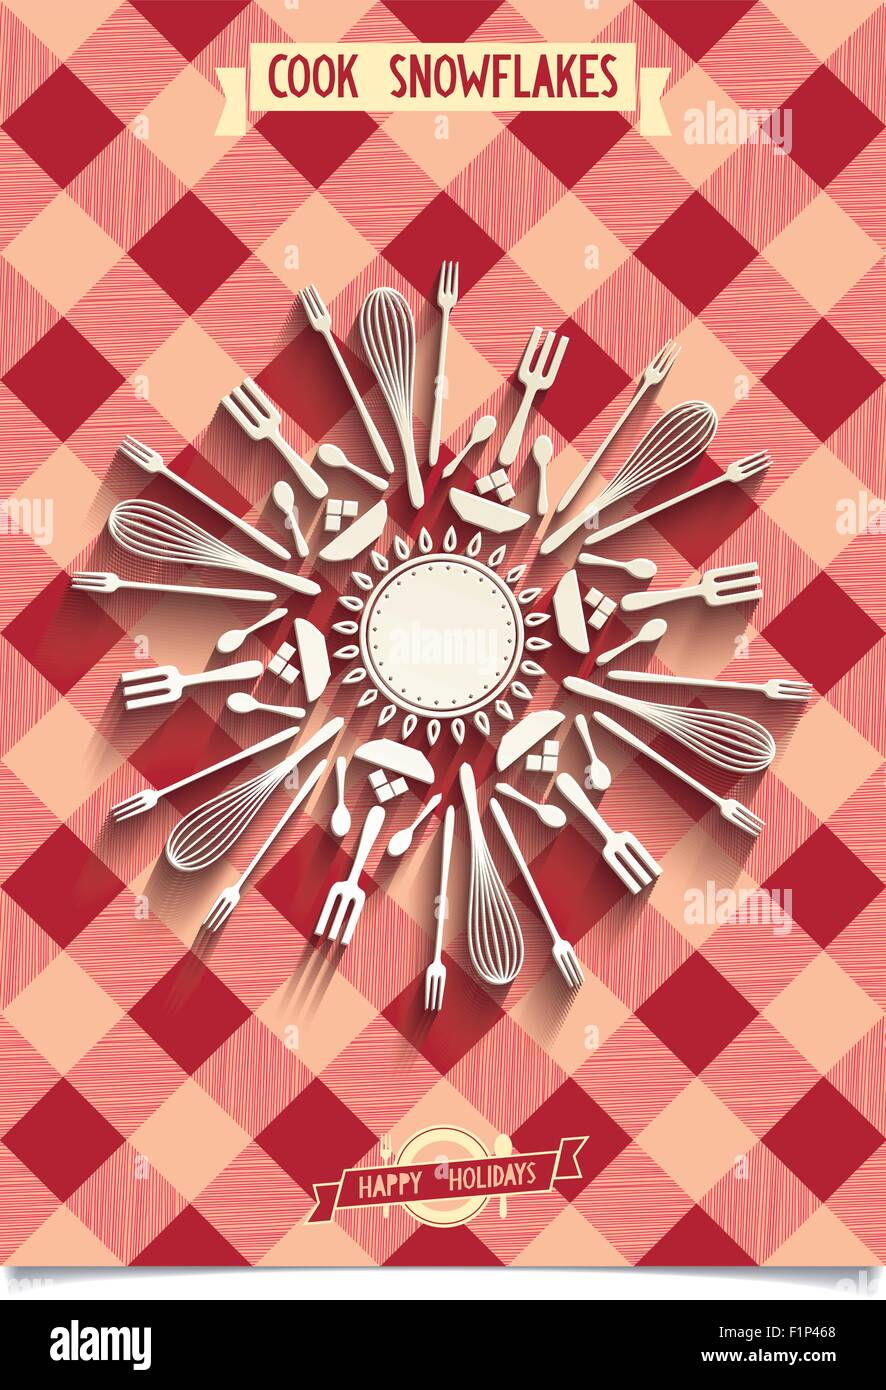 Christmas decorations Snowflakes Make from kitchen utensils and cutlery. Design elements for embellish your  kitchen - Stock Vector